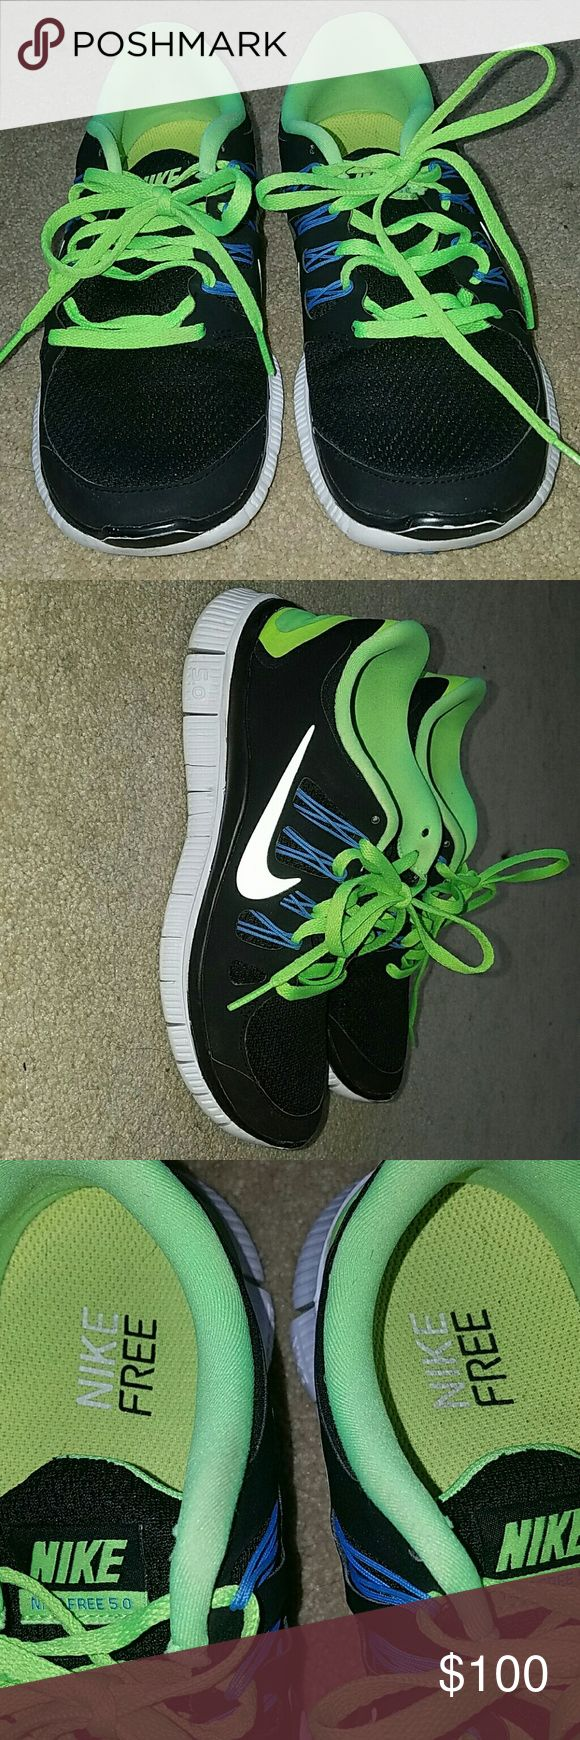 Nike Free runners - clean - no holes - a little dirty on soles - neon and black Nike Shoes Athletic Shoes